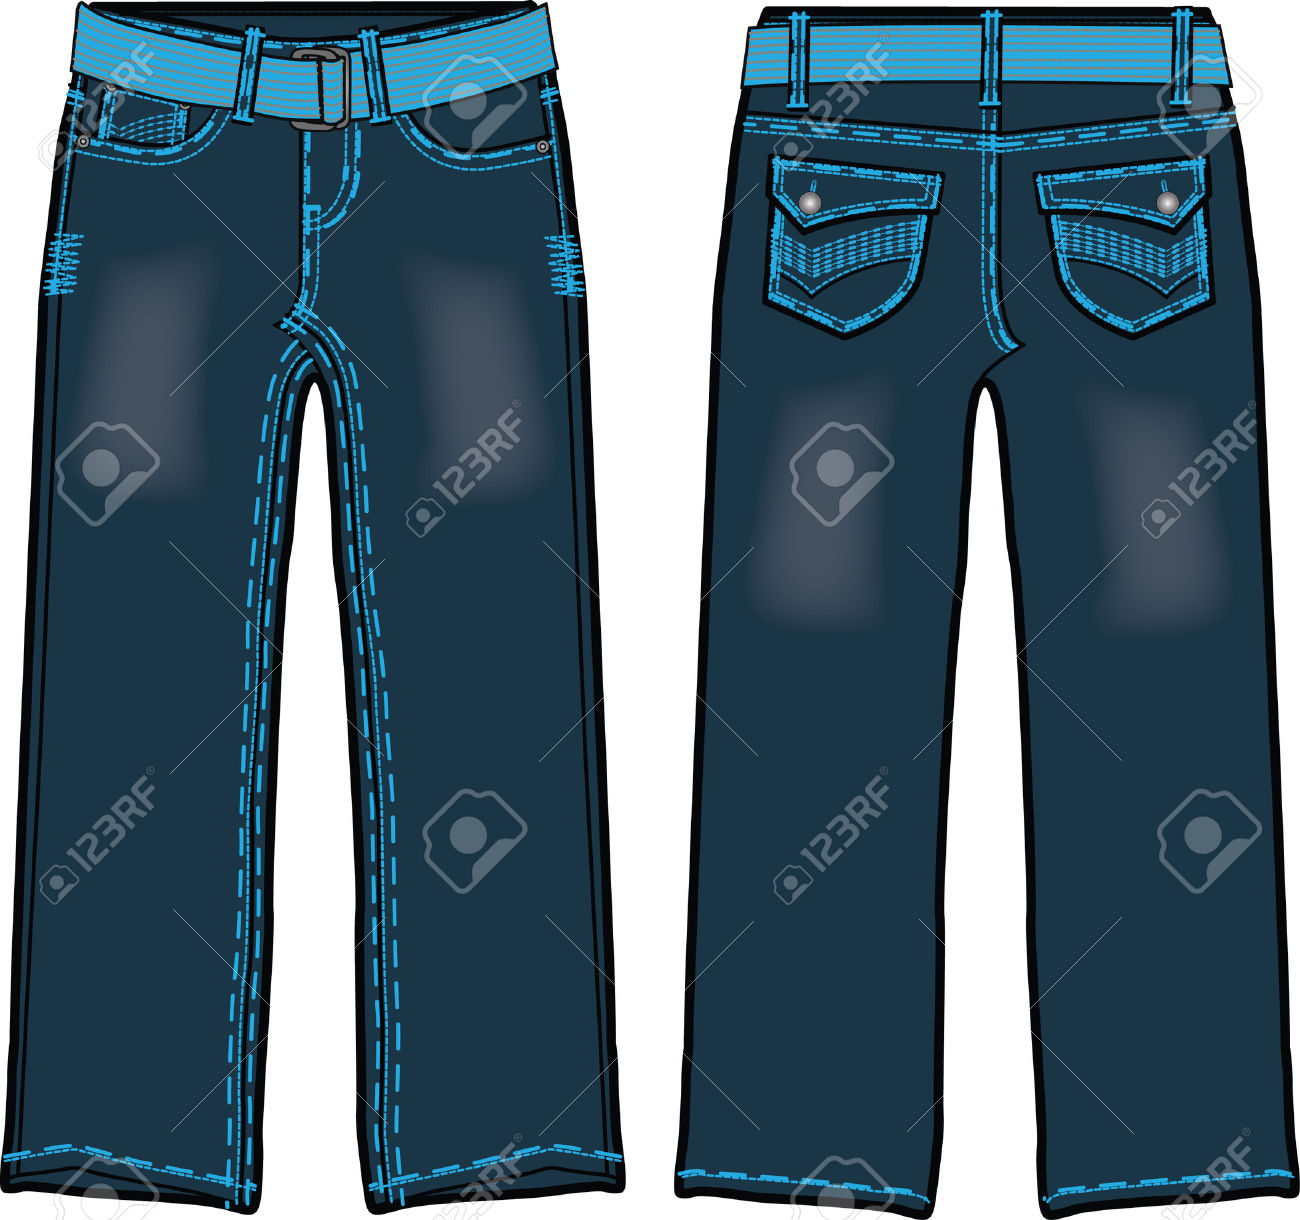 Denim jeans clipart.